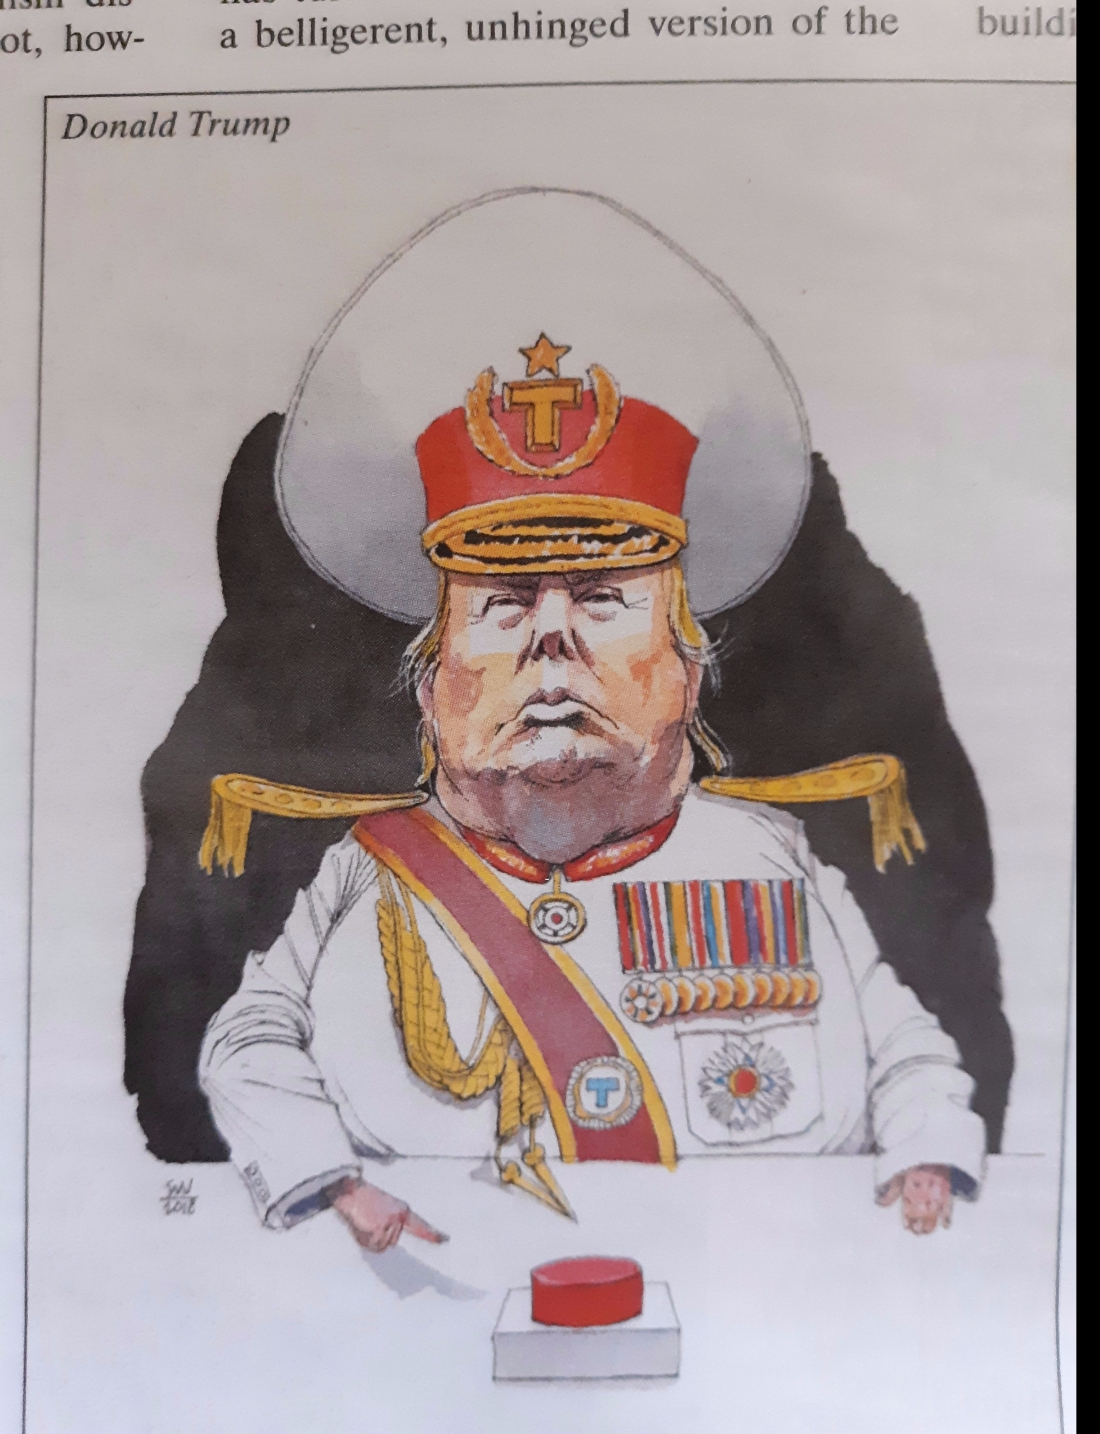 trump-the-dictator-1.26.2019-e1555823920180.jpg